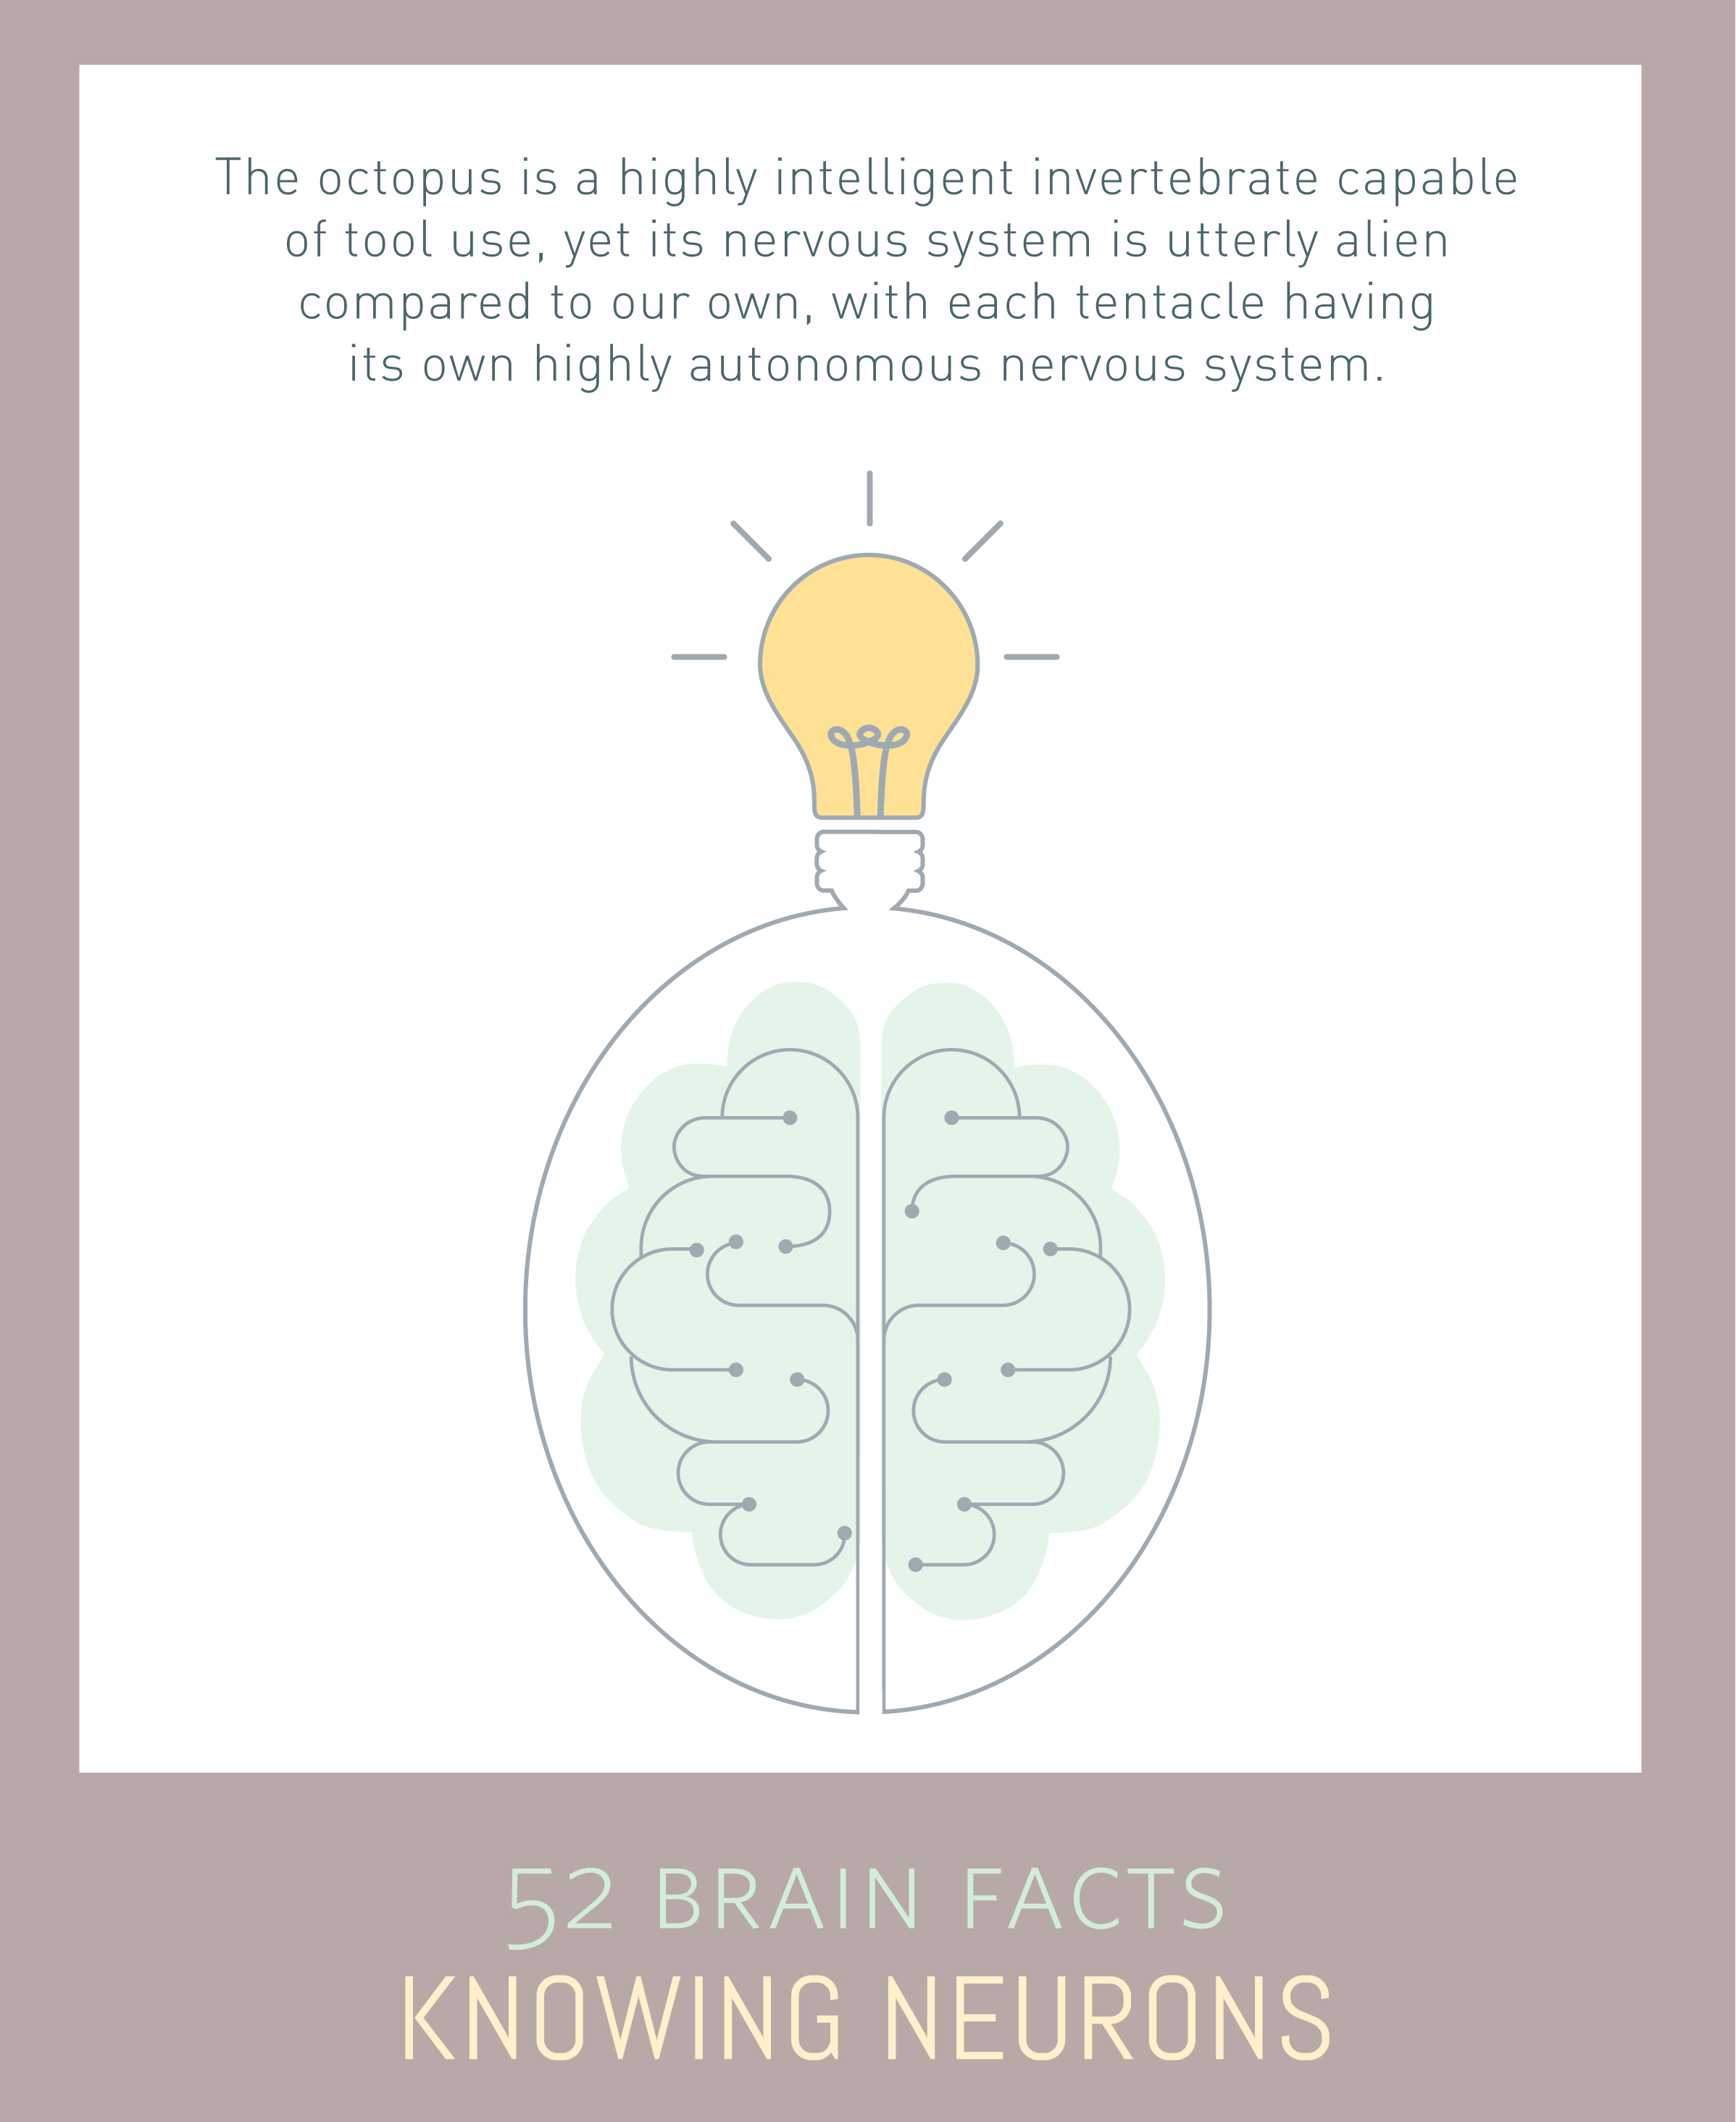 Myth or fact? A highly centralized nervous system is necessary for intelligent behaviors.